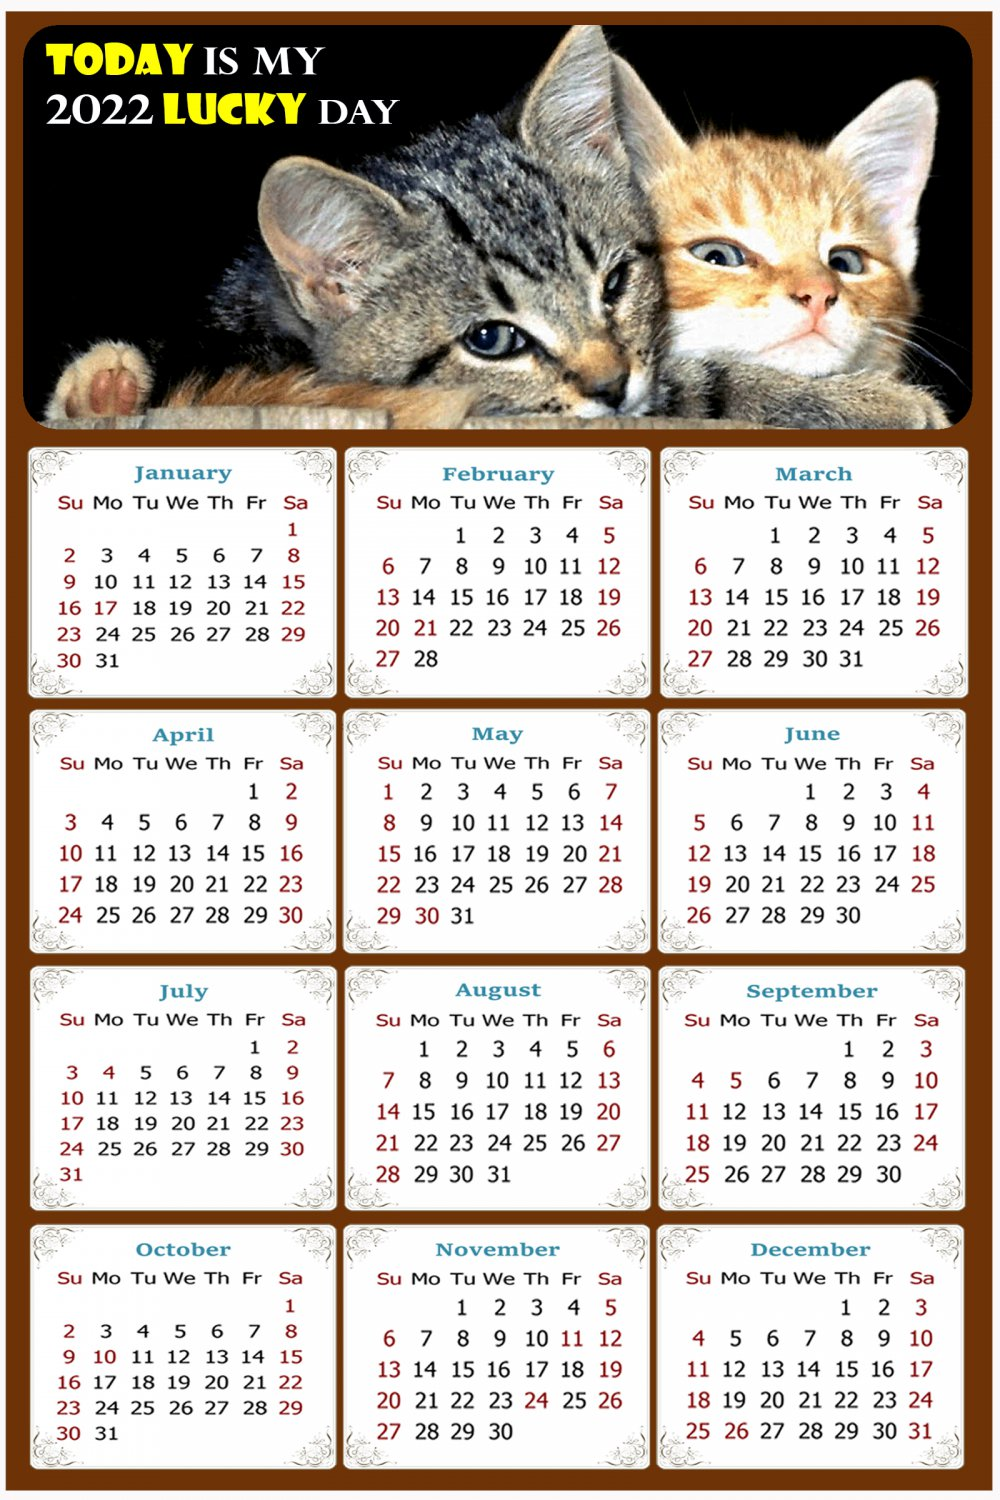 2022 Magnetic Calendar - Calendar Magnets - Today is My Lucky Day - Cat Themed 010 (7 x 10.5)